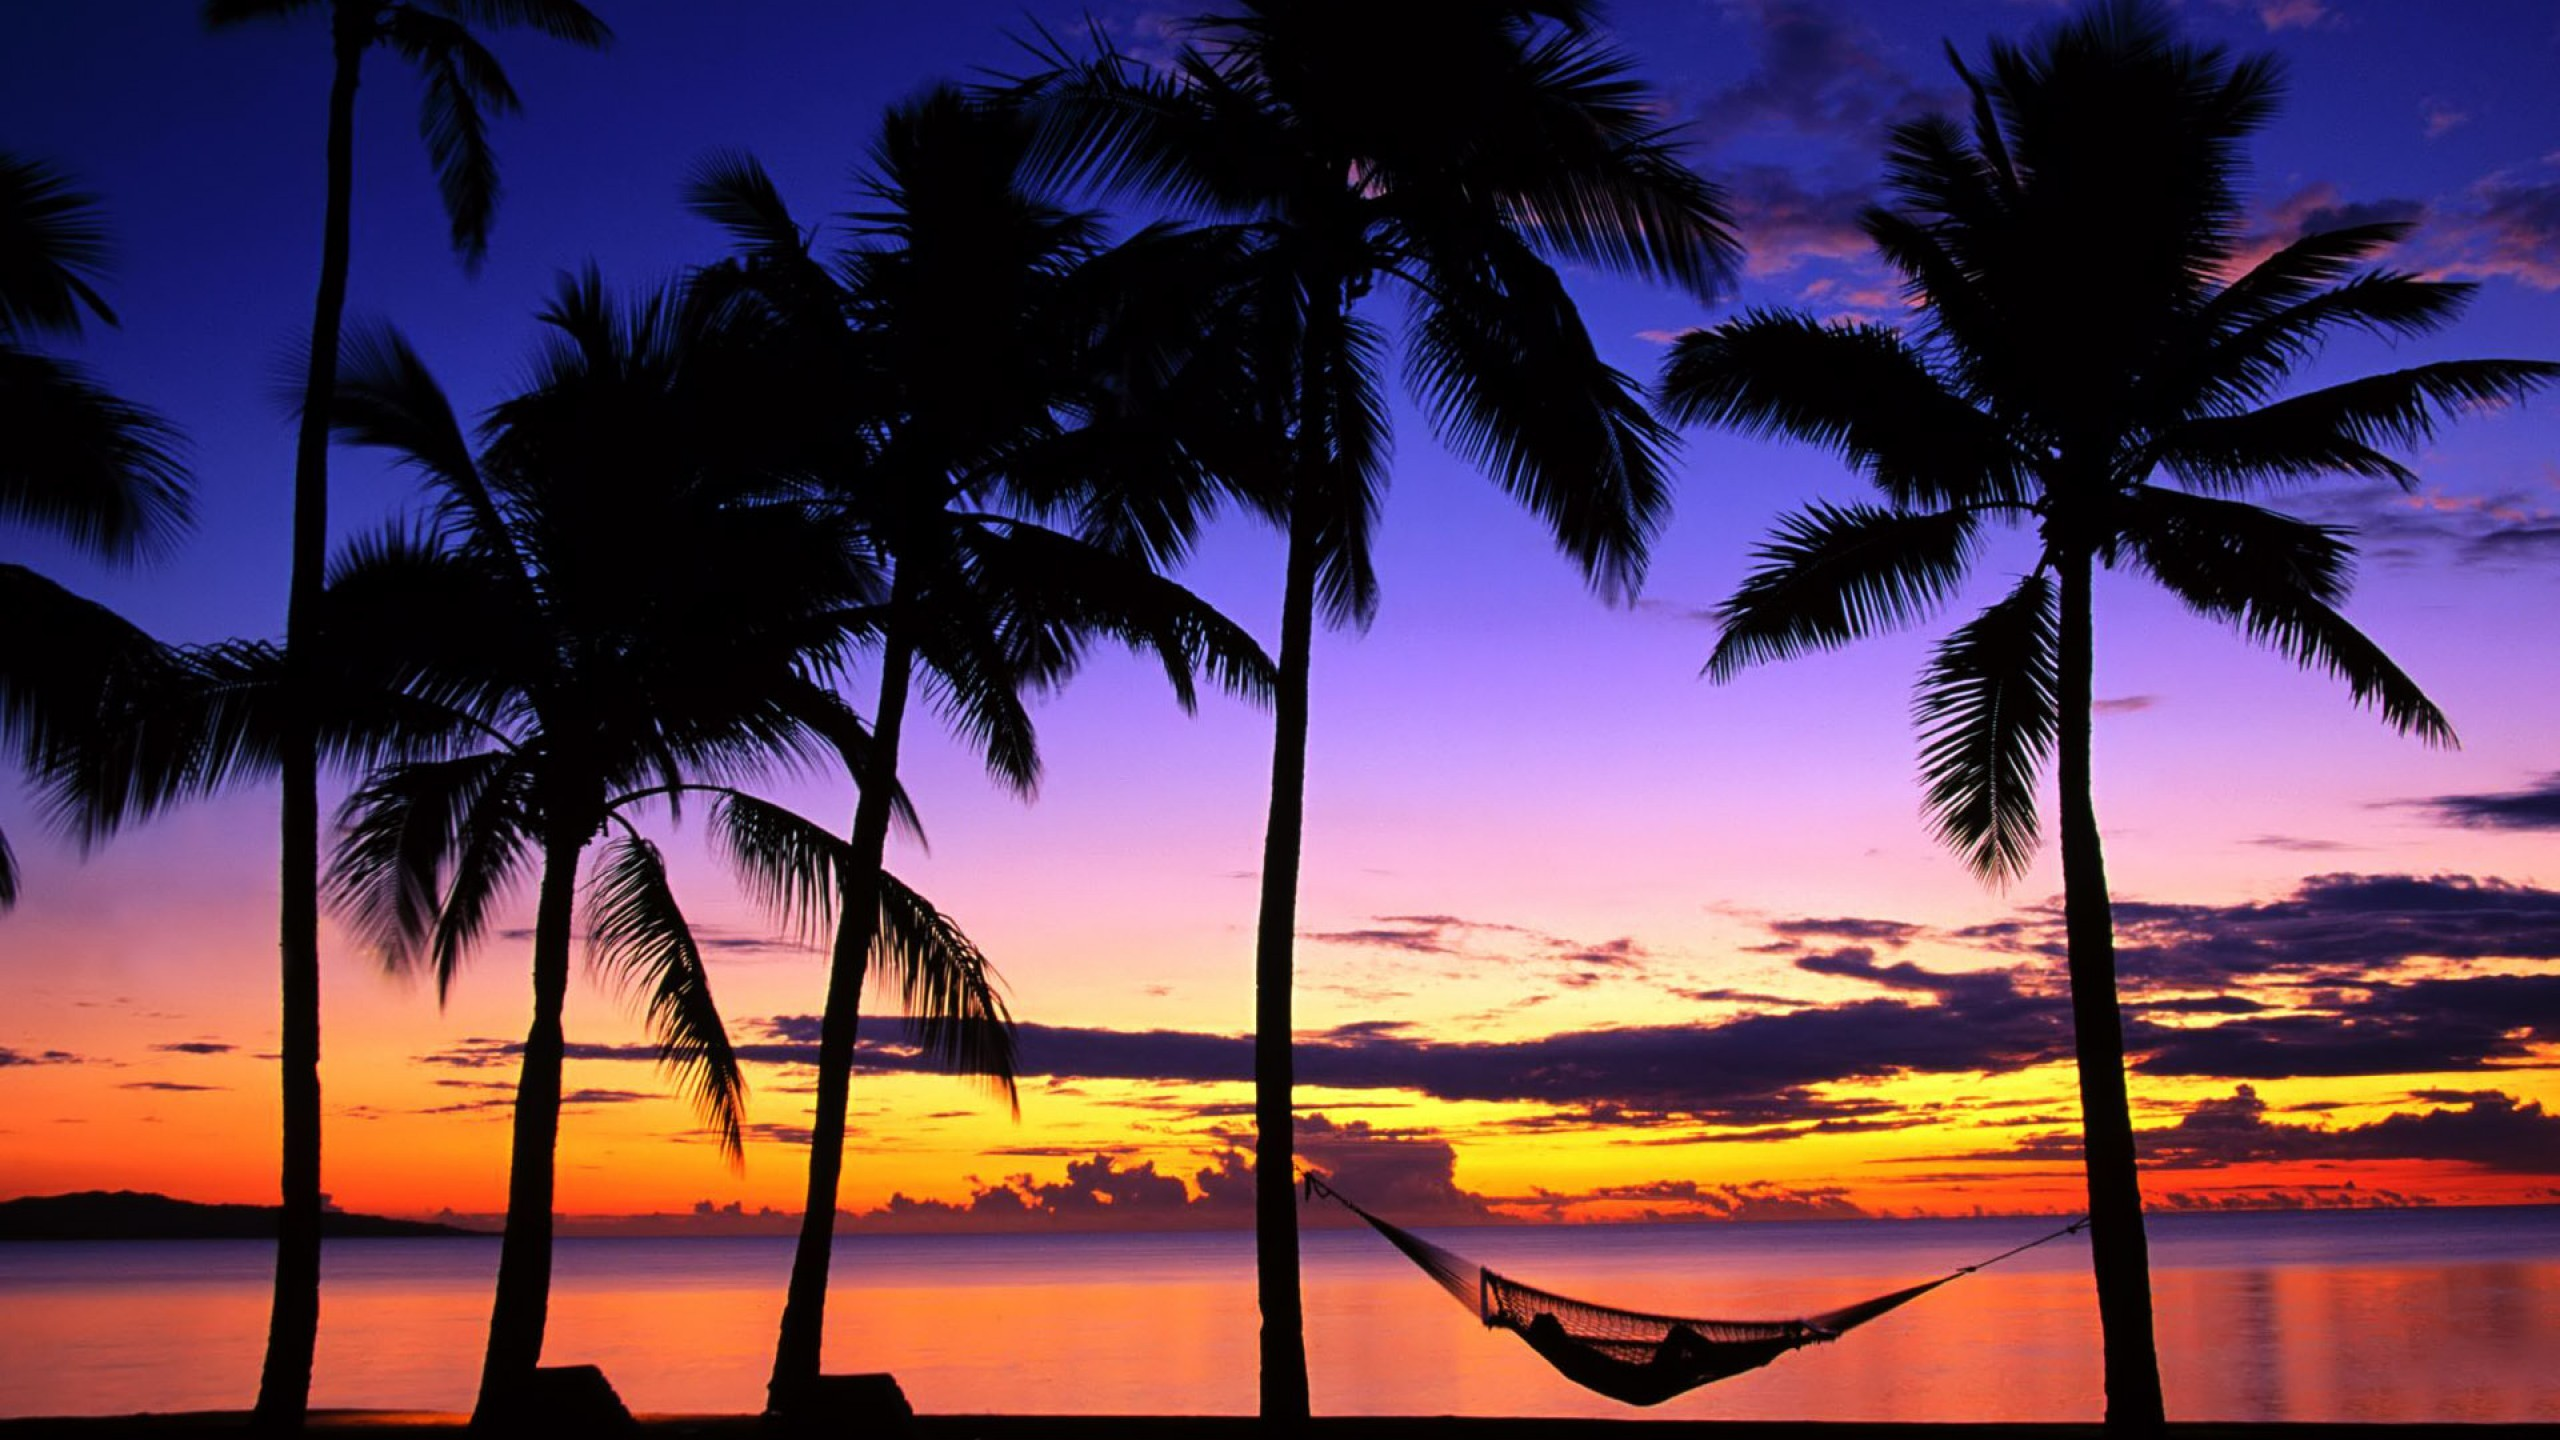 Tropical Sunset Wallpapers (37 Wallpapers)